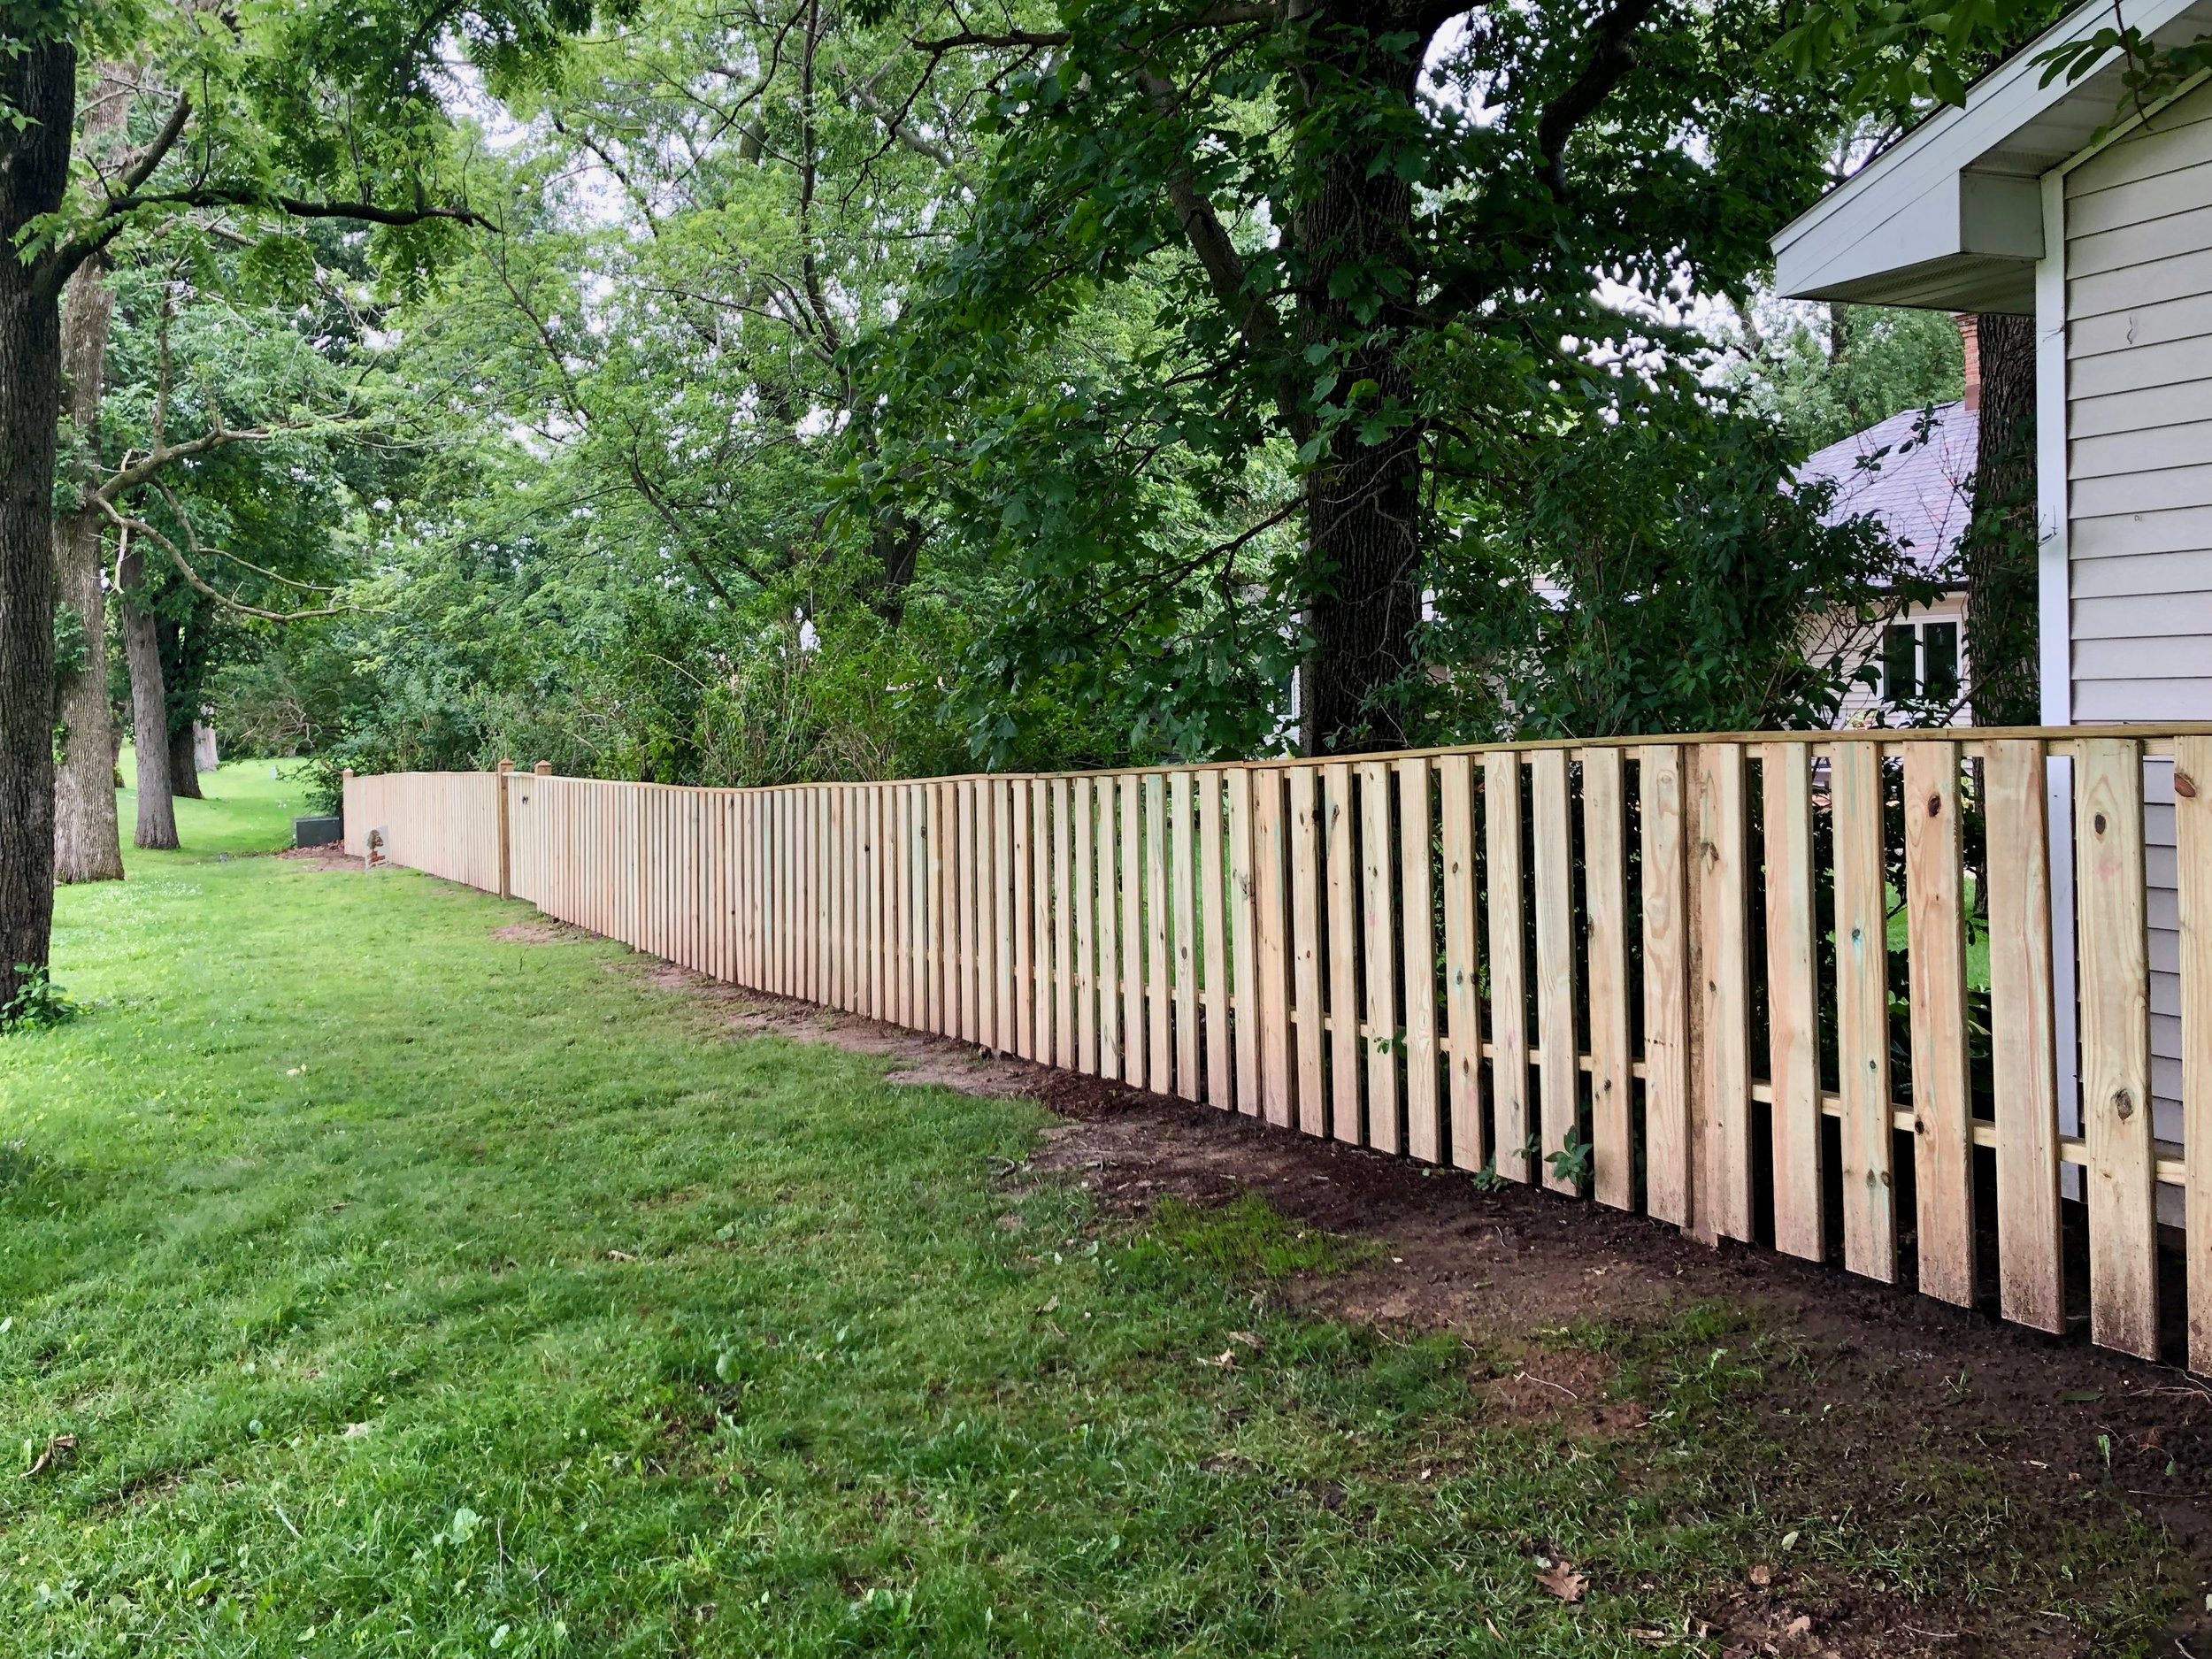 The longest fence run which follows the sloping terrain